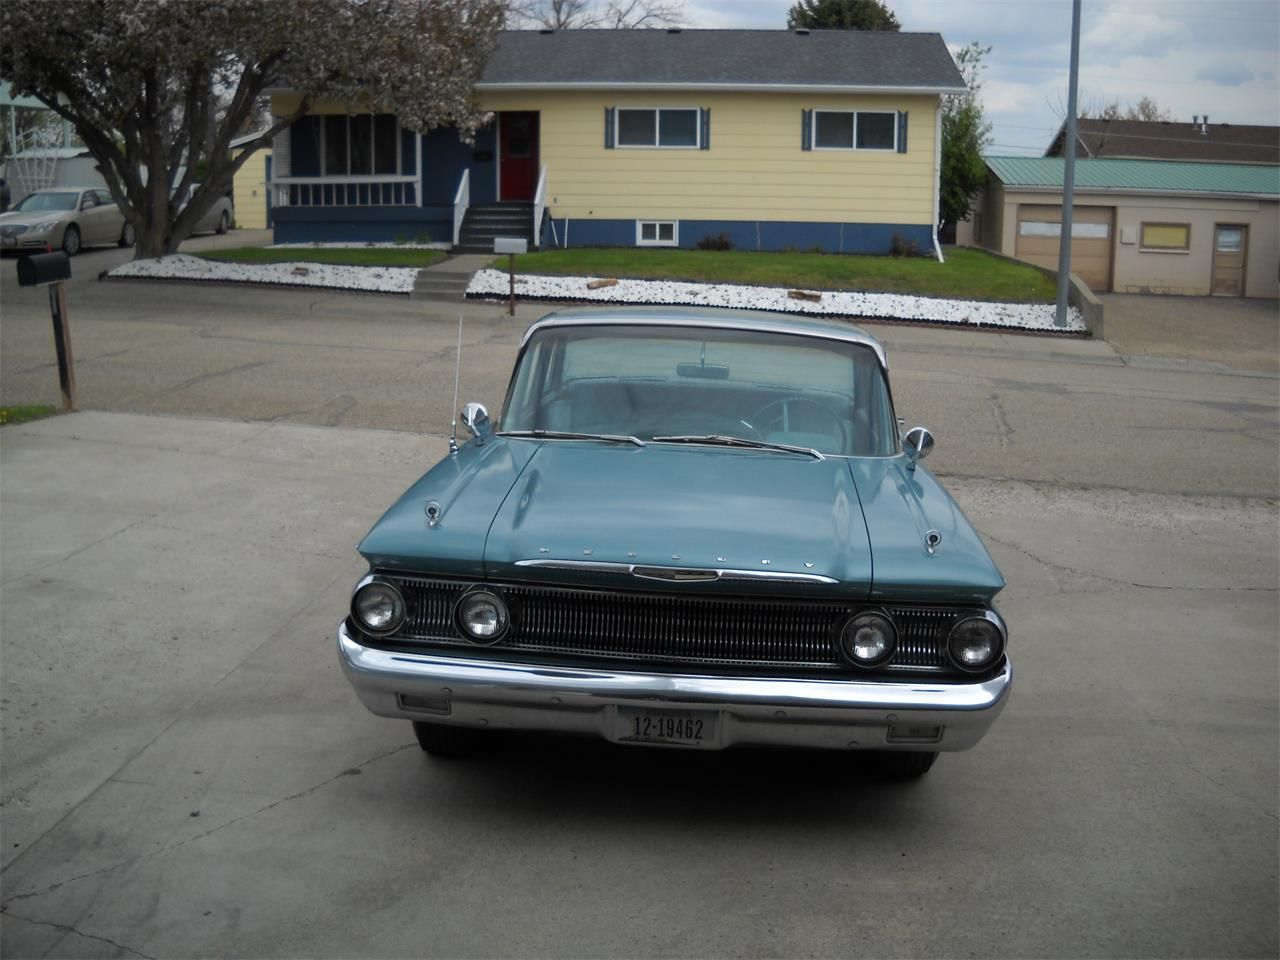 Large Picture of Classic 1960 Mercury Monterey - $6,200.00 Offered by a Private Seller - Q463